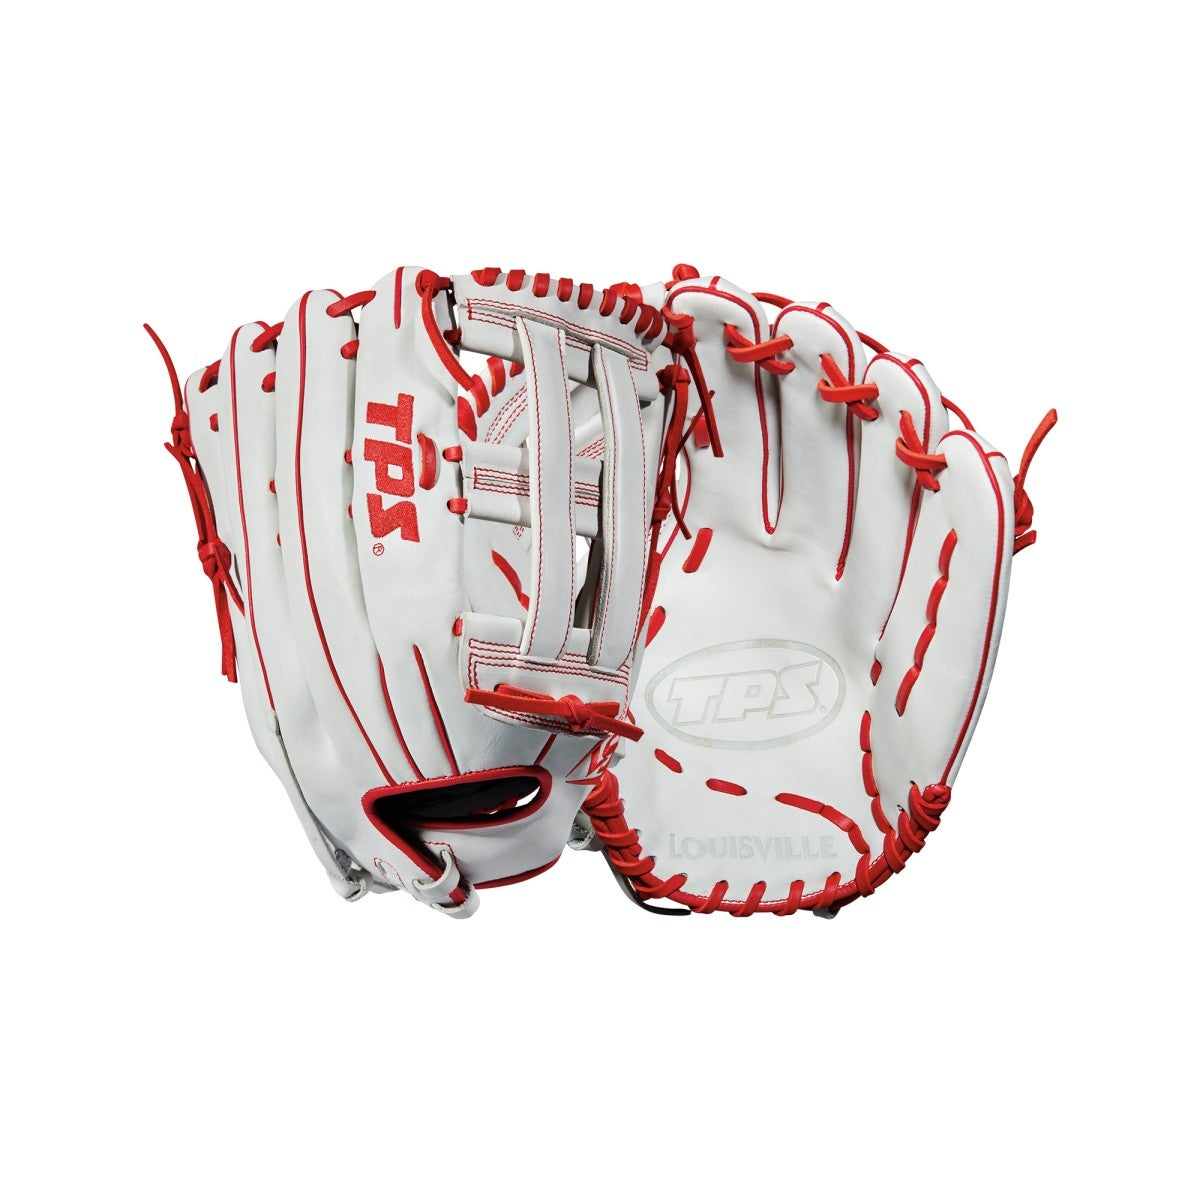 Tps 14 Quot Slowpitch Softball Glove Right Hand Throw